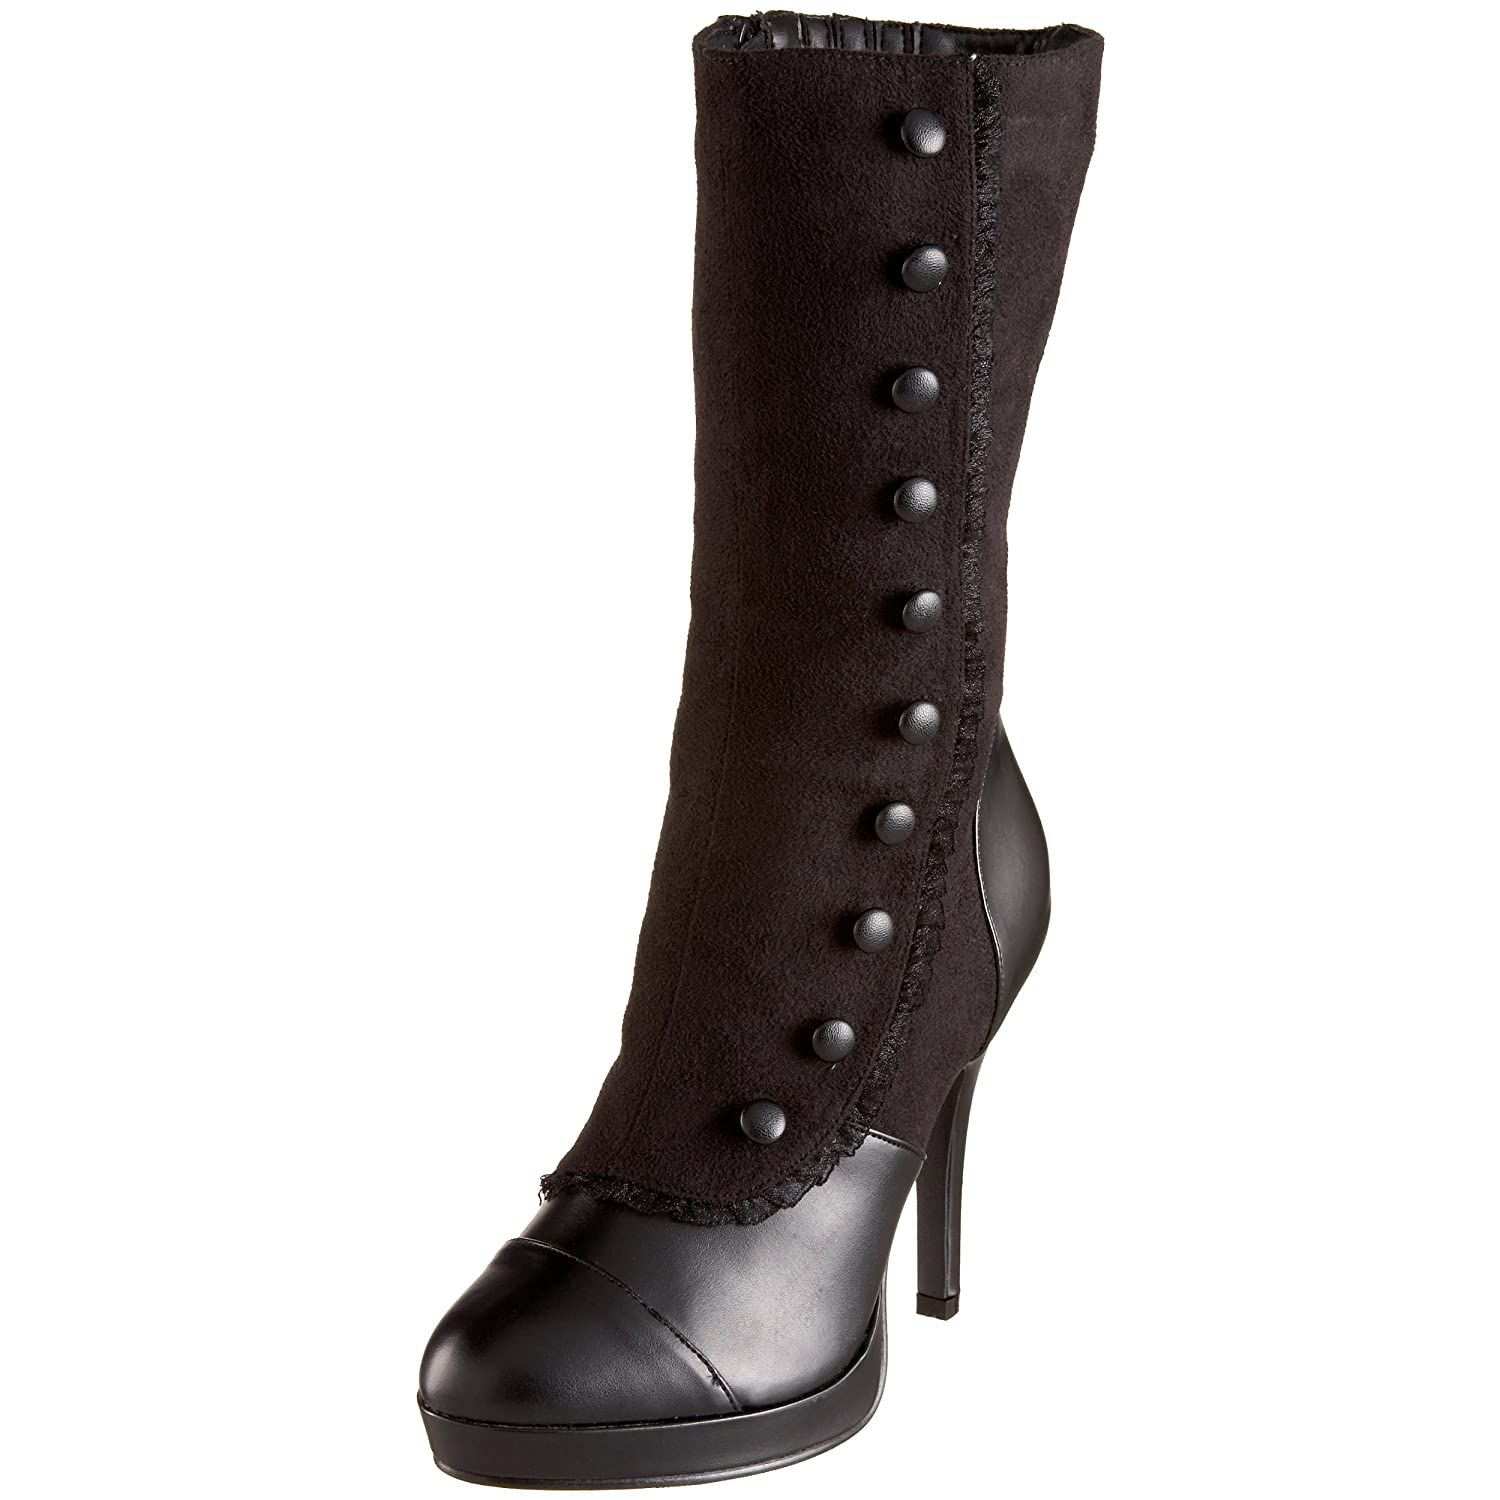 Vintage Boots- Winter Rain and Snow Boots  Womens Splendor-130 Mid-Calf Boot $45.96 AT vintagedancer.com